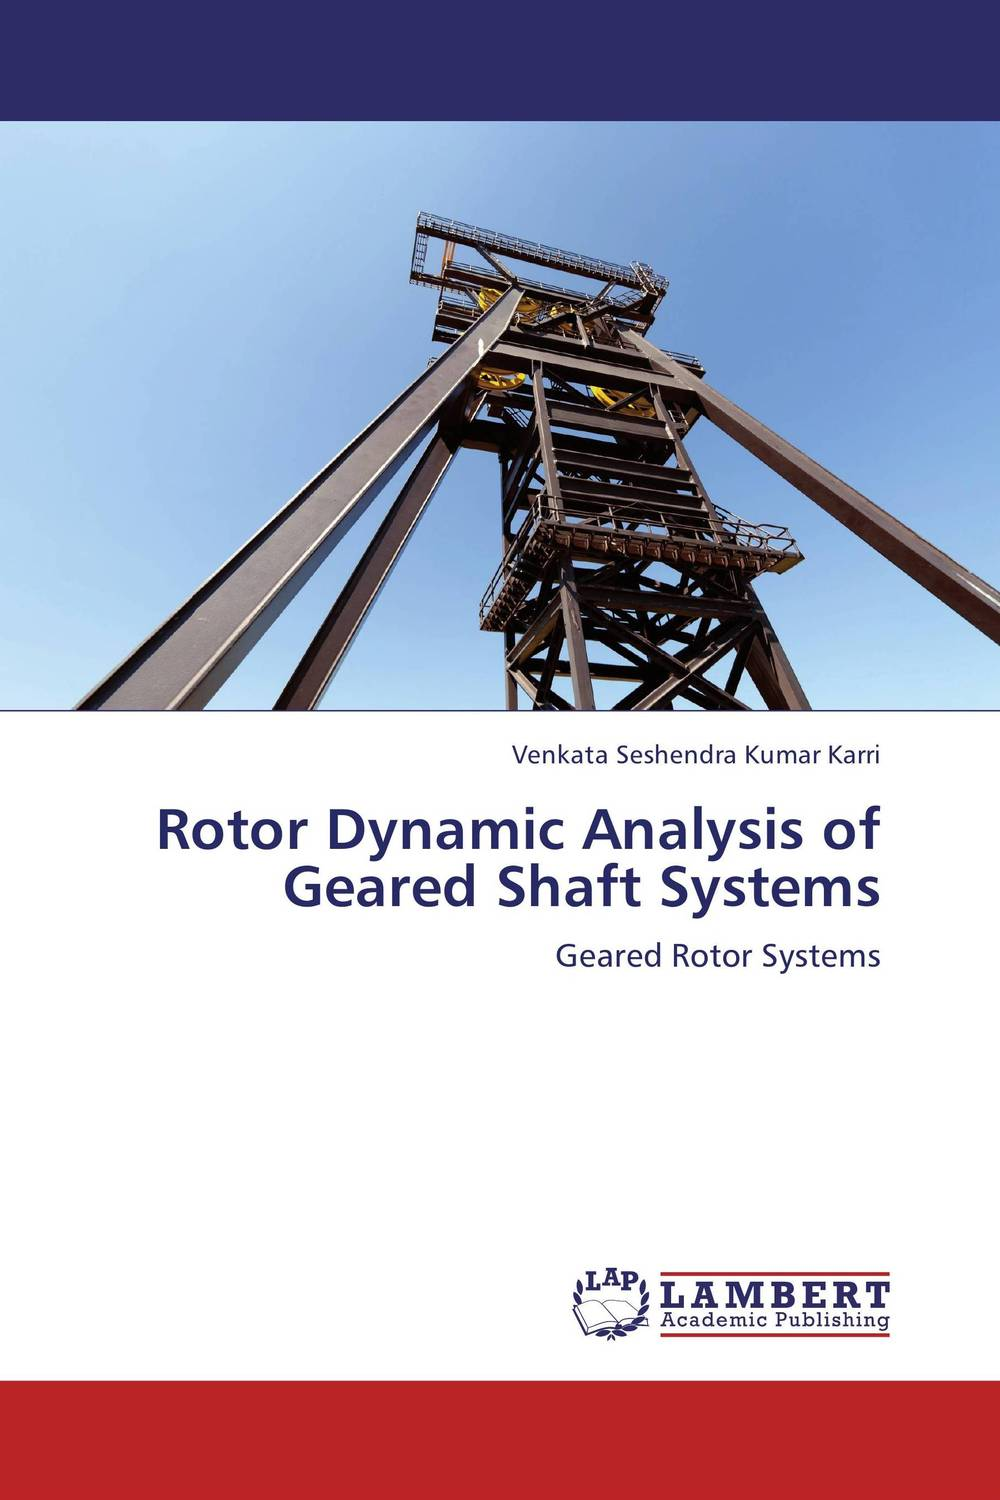 Rotor Dynamic Analysis of Geared Shaft Systems the lighye caste system